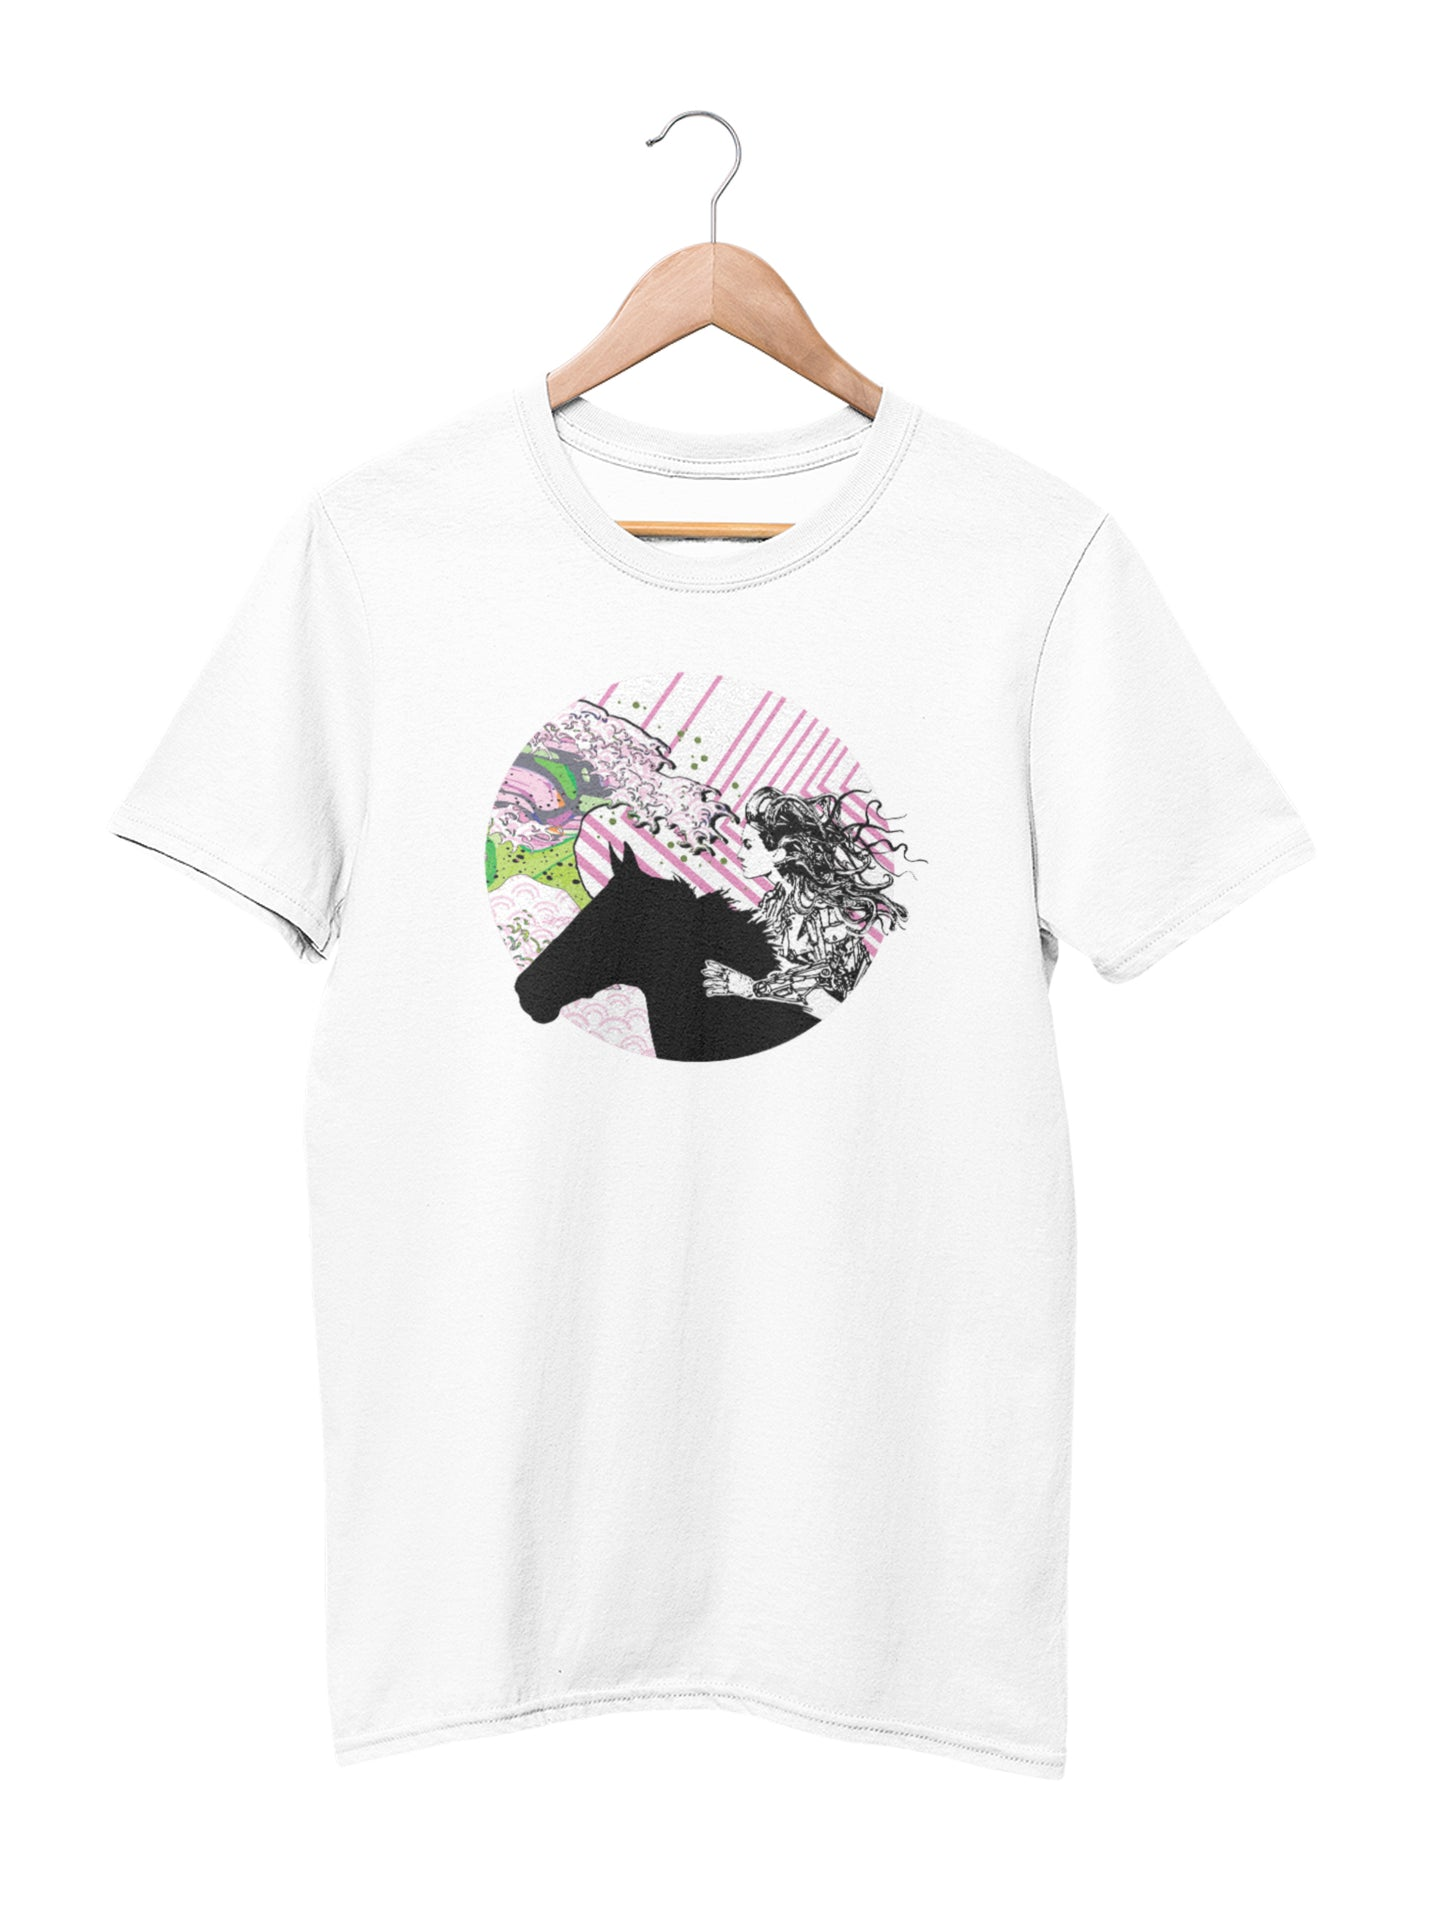 T-shirt with Android Girl - Women